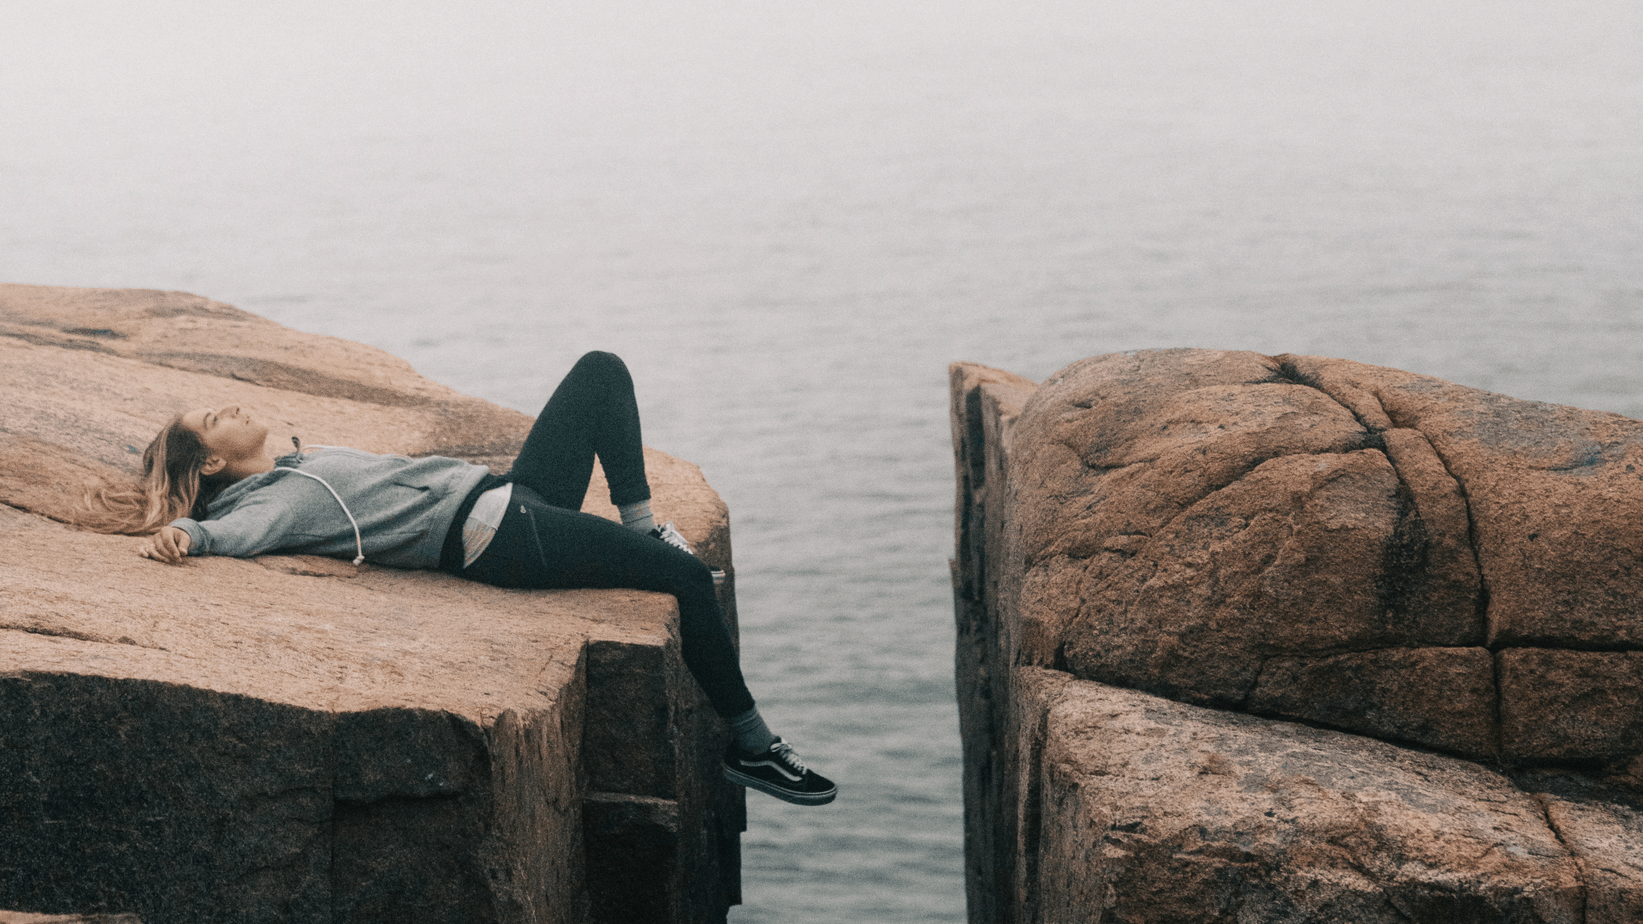 woman too tired to cross the gap in rocks | willpower